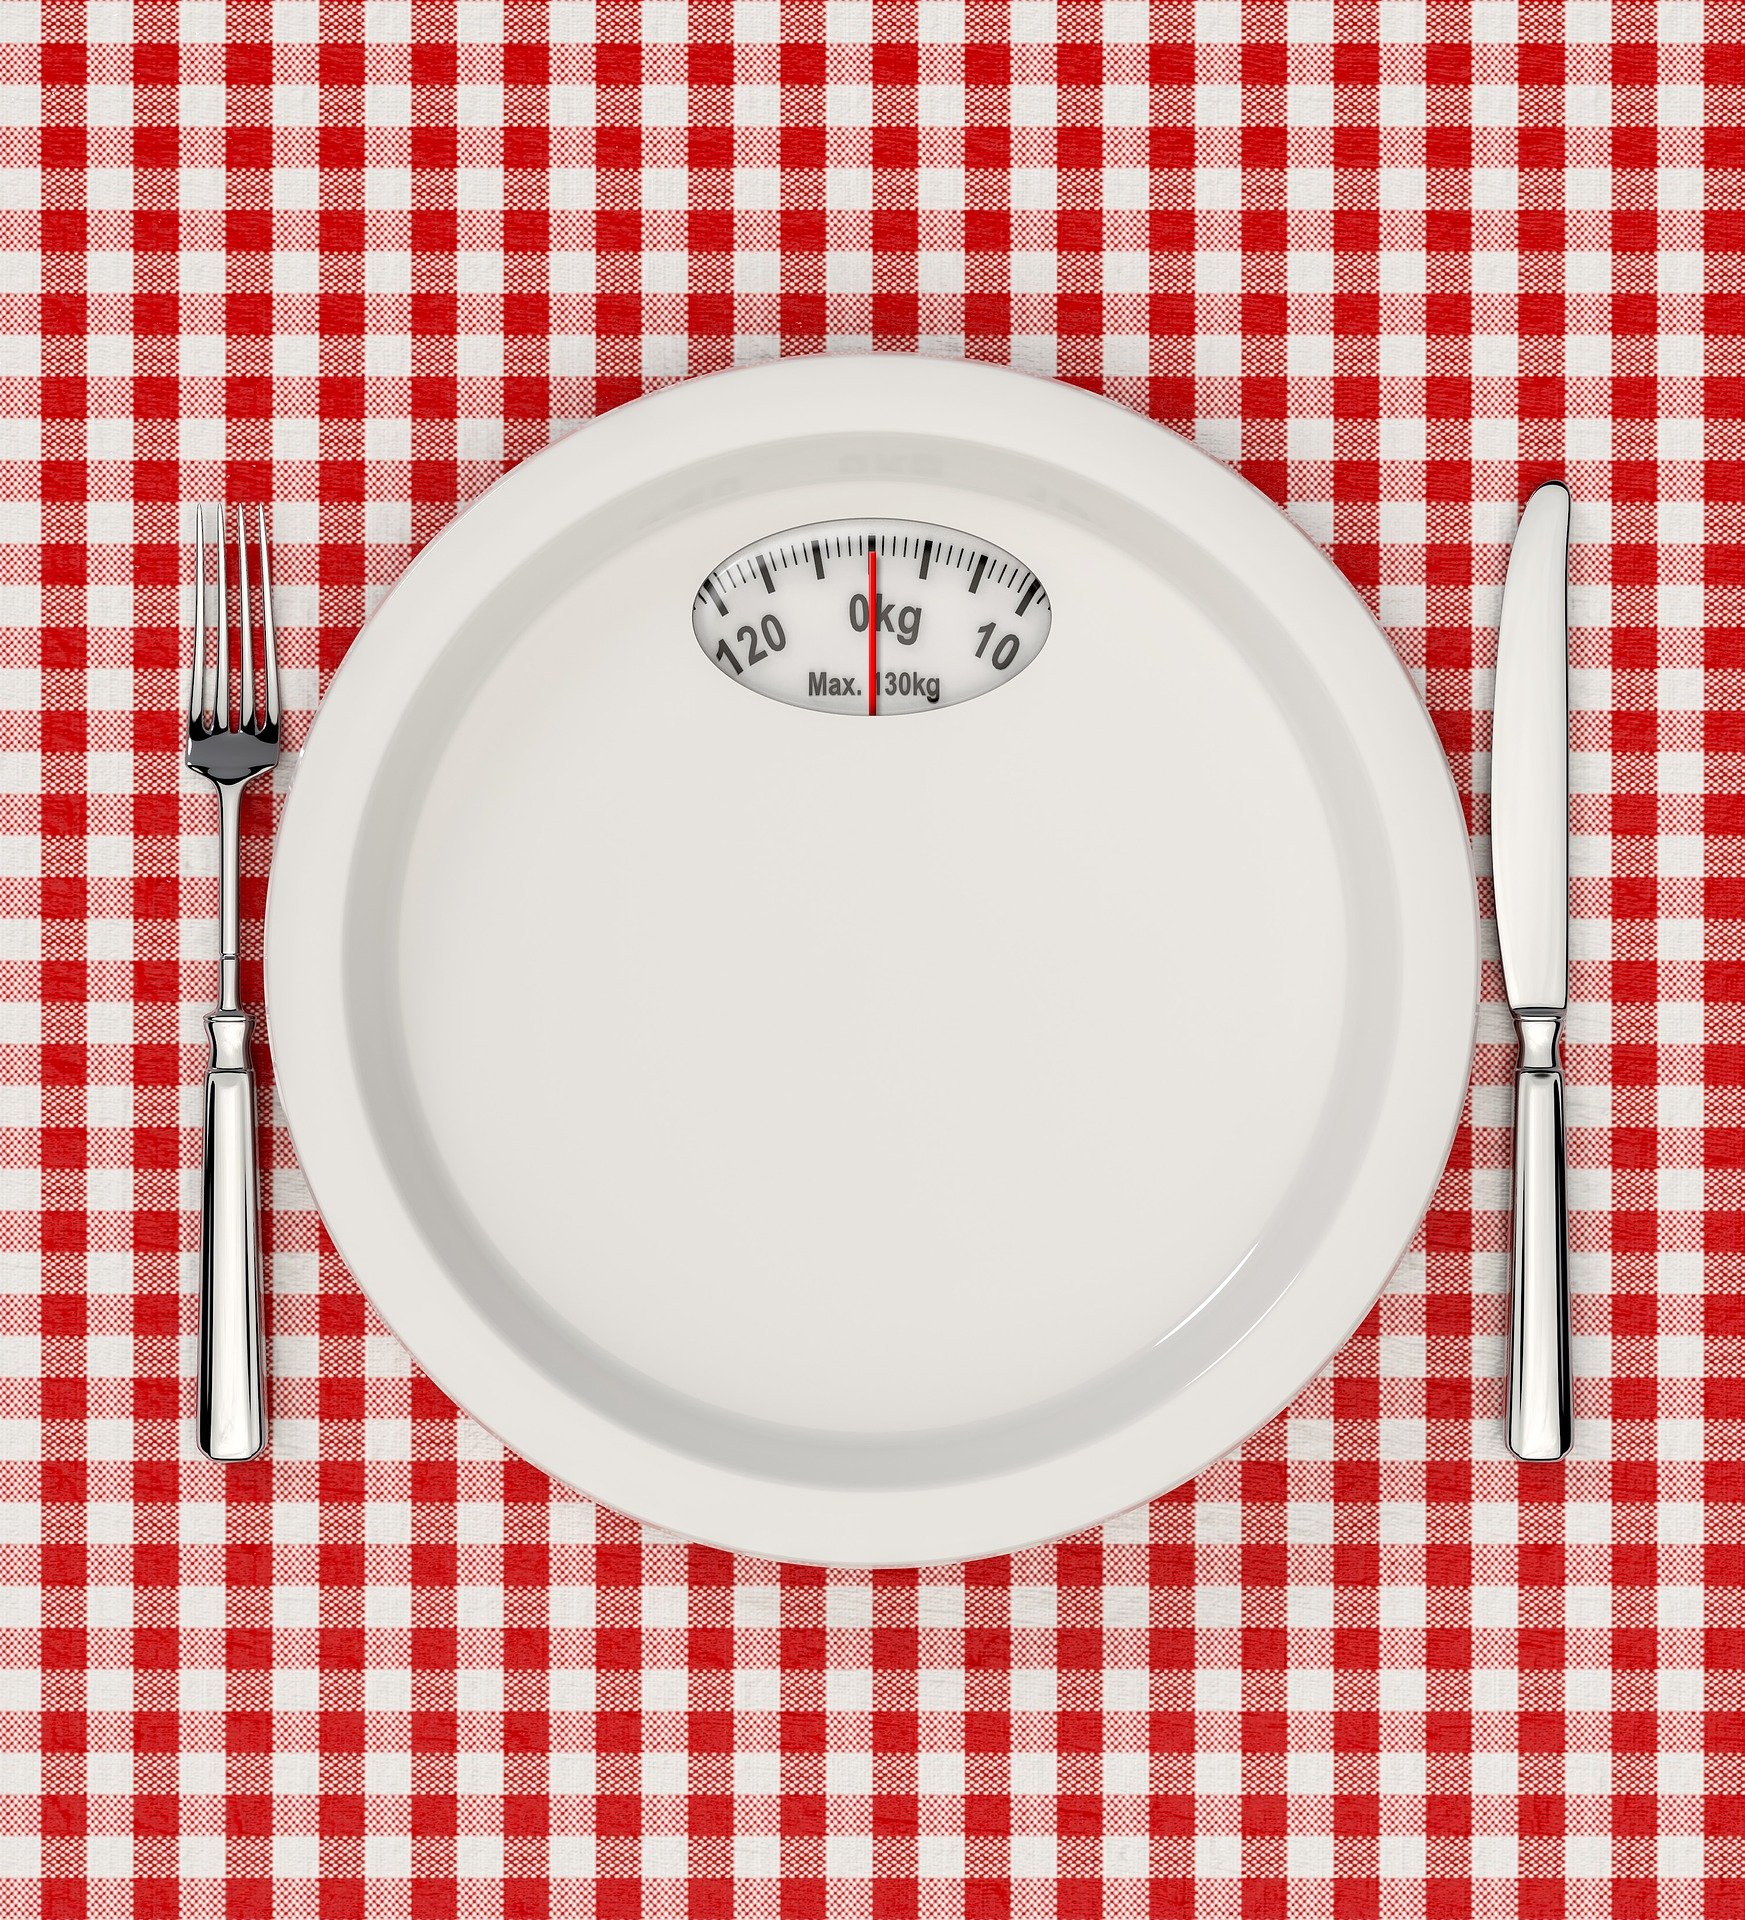 Empty plate that looks like a scale.